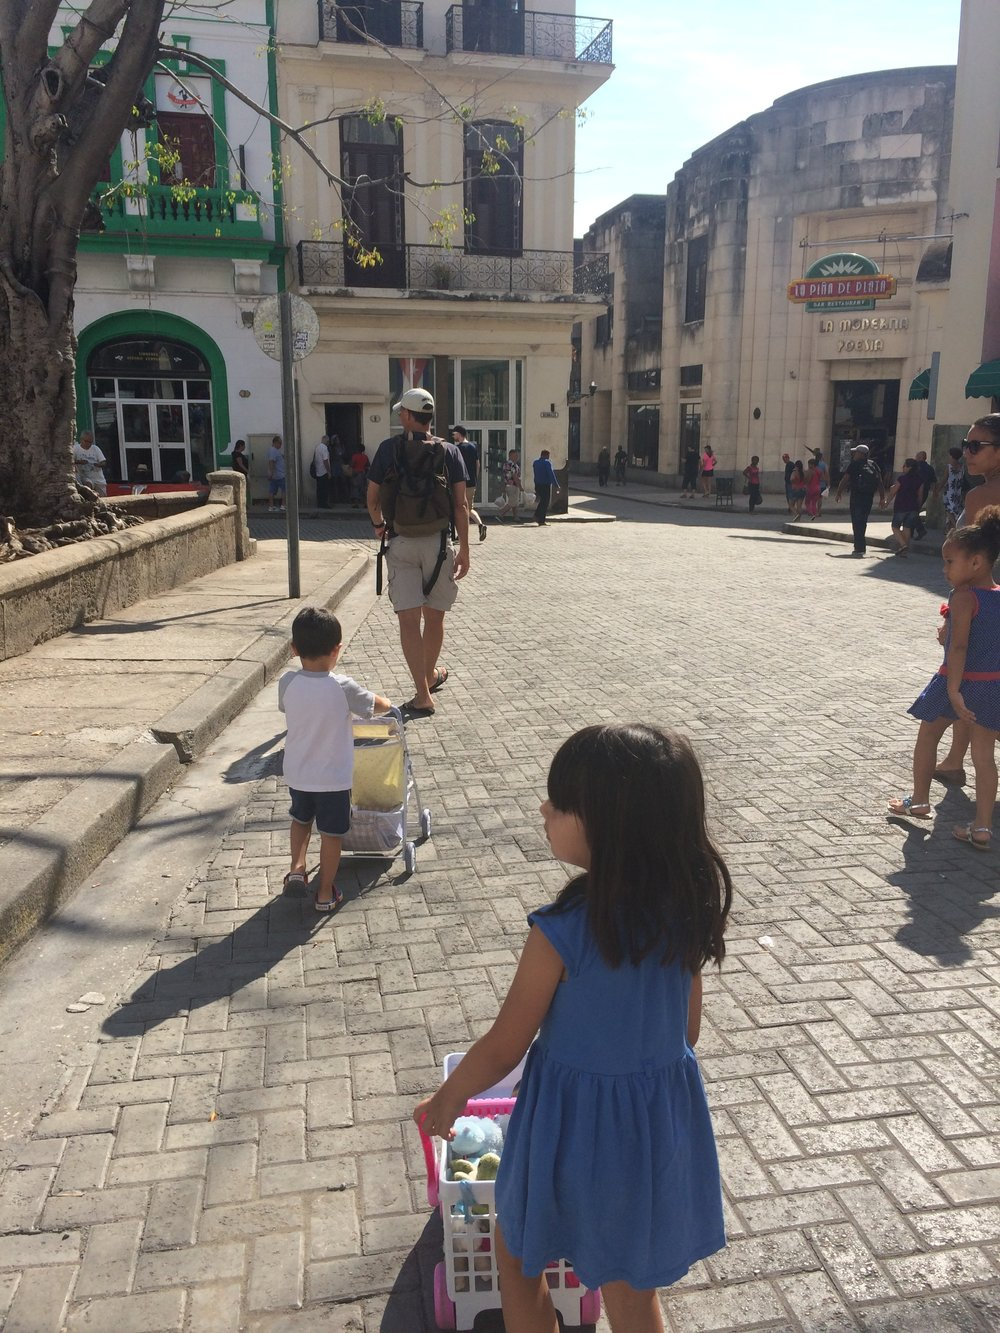 Our kids, now aged 3 and 5, pushing their dolls around in Old Havana.